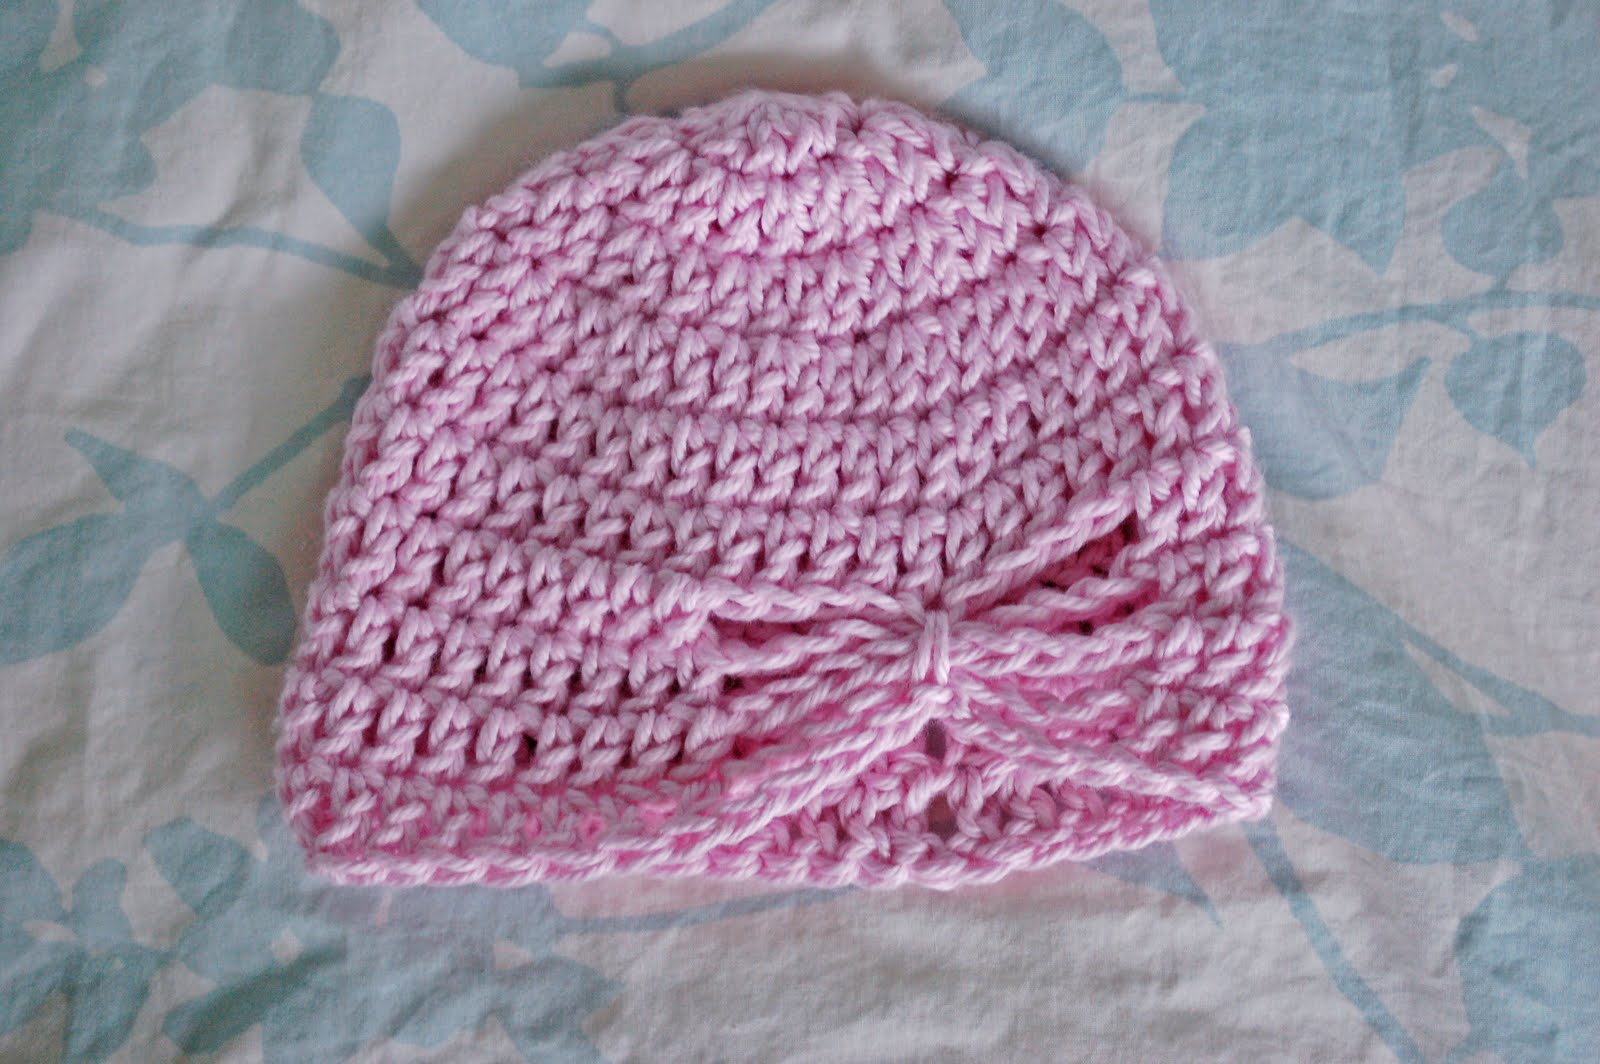 Alli crafts free pattern butterfly hat newborn free pattern butterfly hat newborn bankloansurffo Image collections